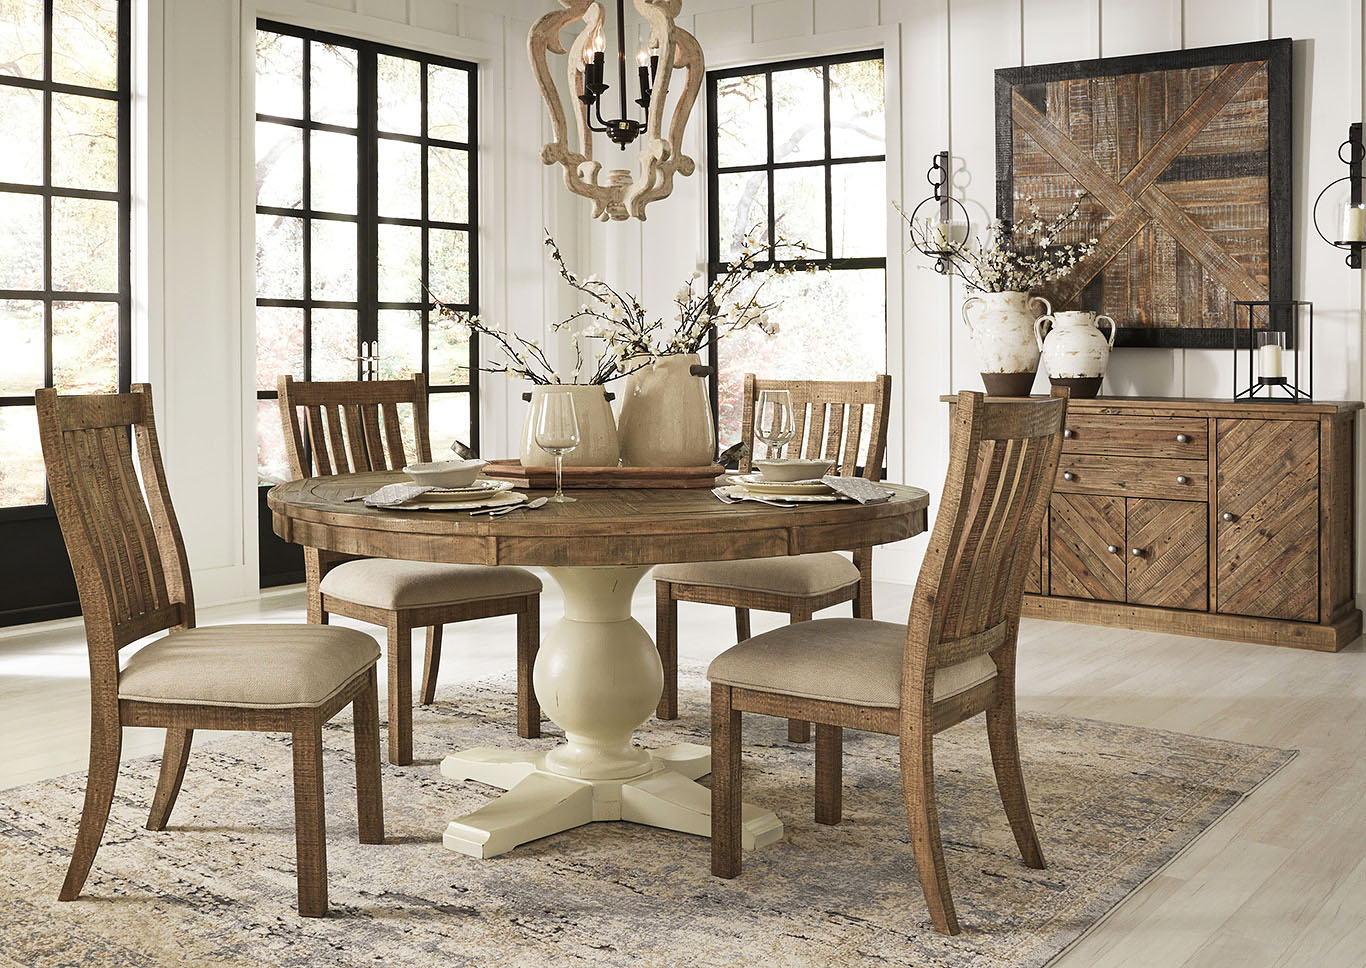 Woodstock Furniture Value Center Grindleburg Round Dining Table W 4